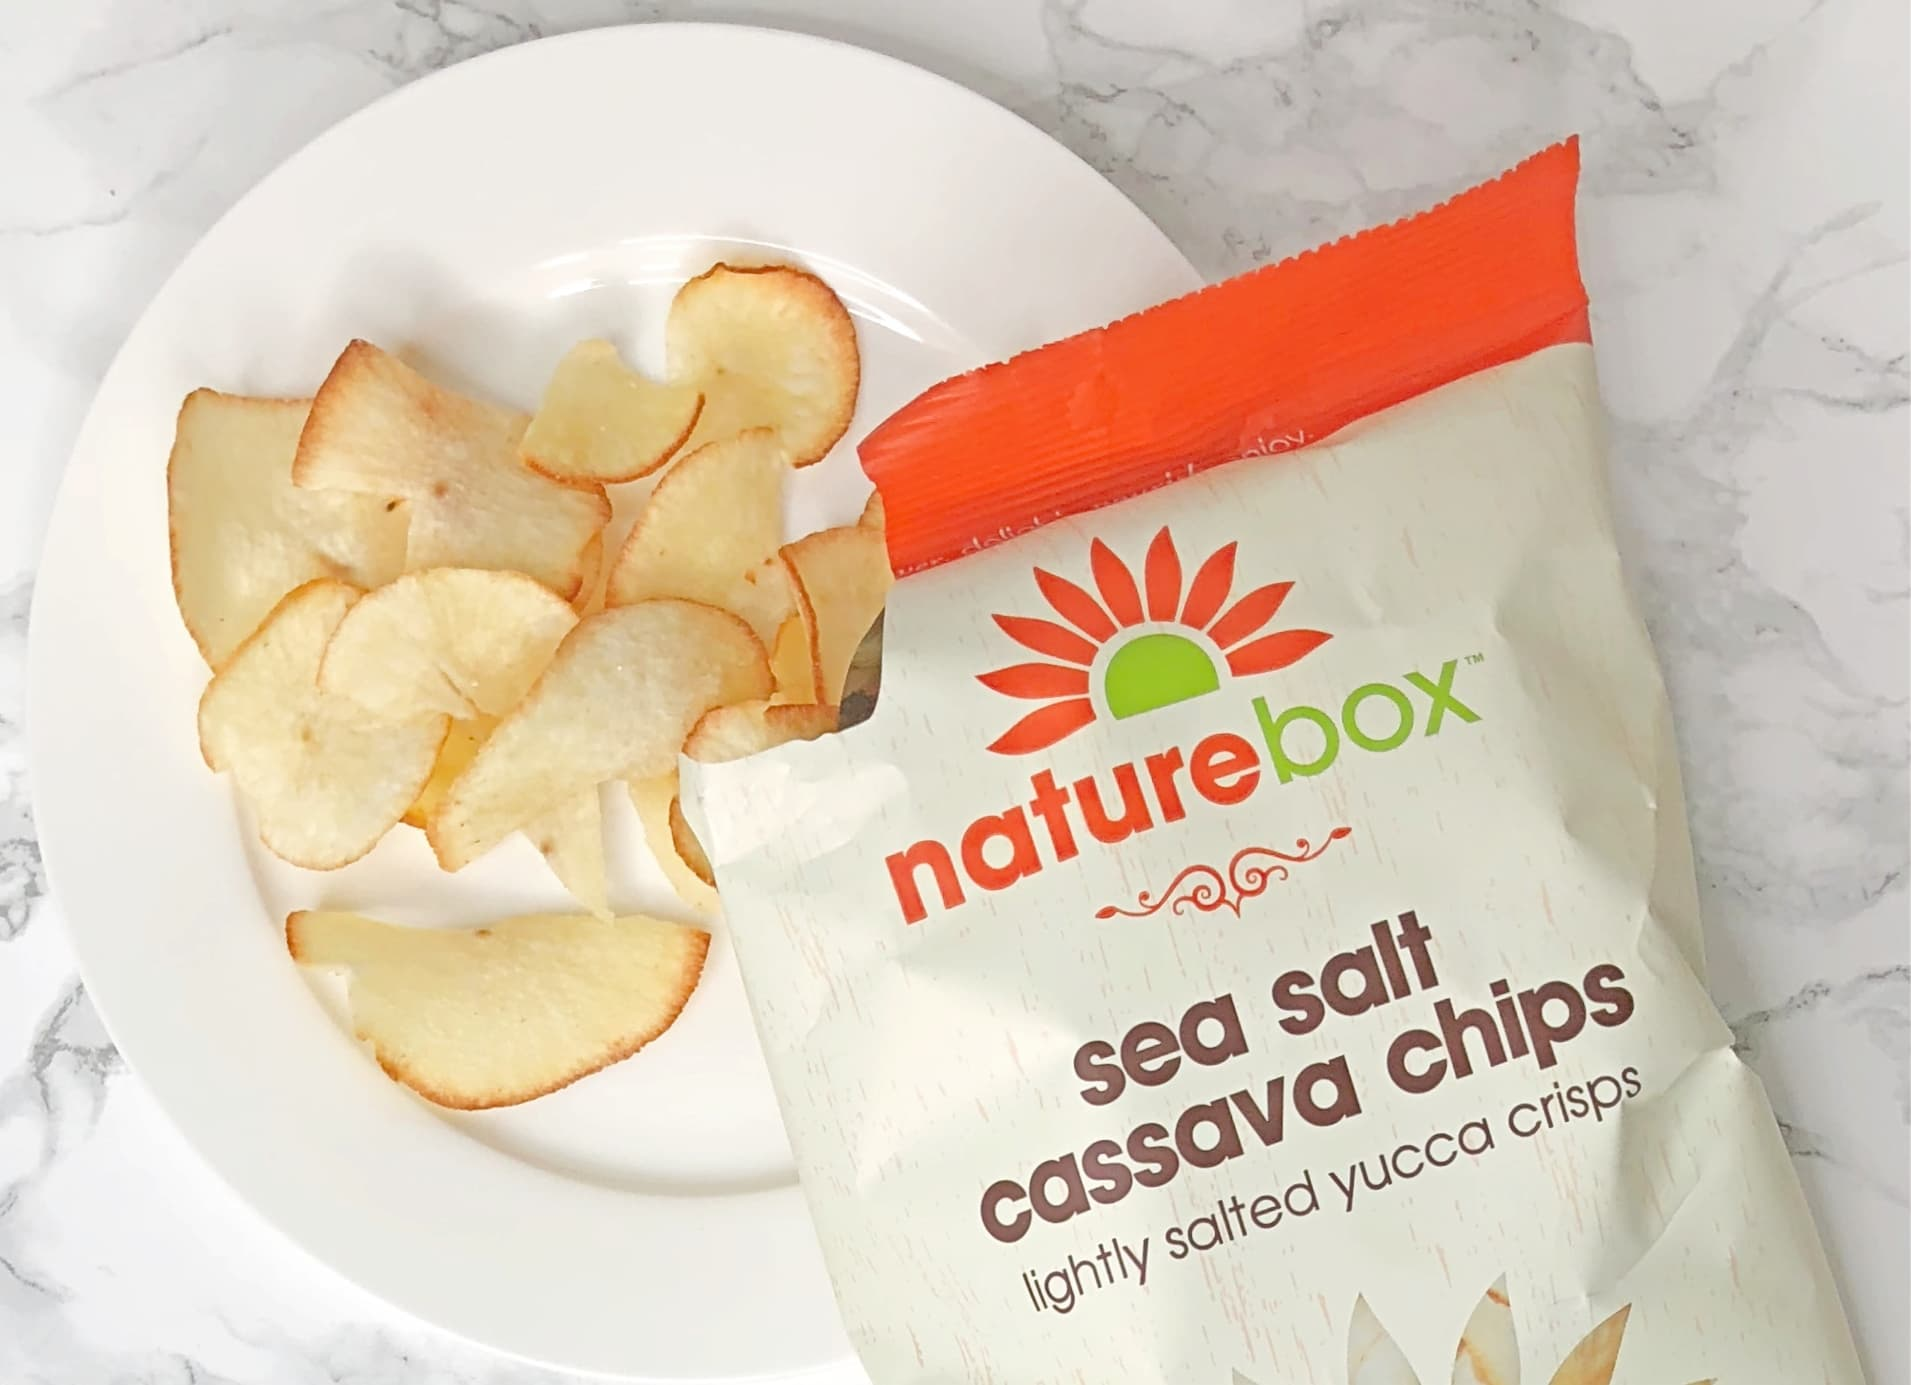 Naturebox reviews - sea salt cassava chips